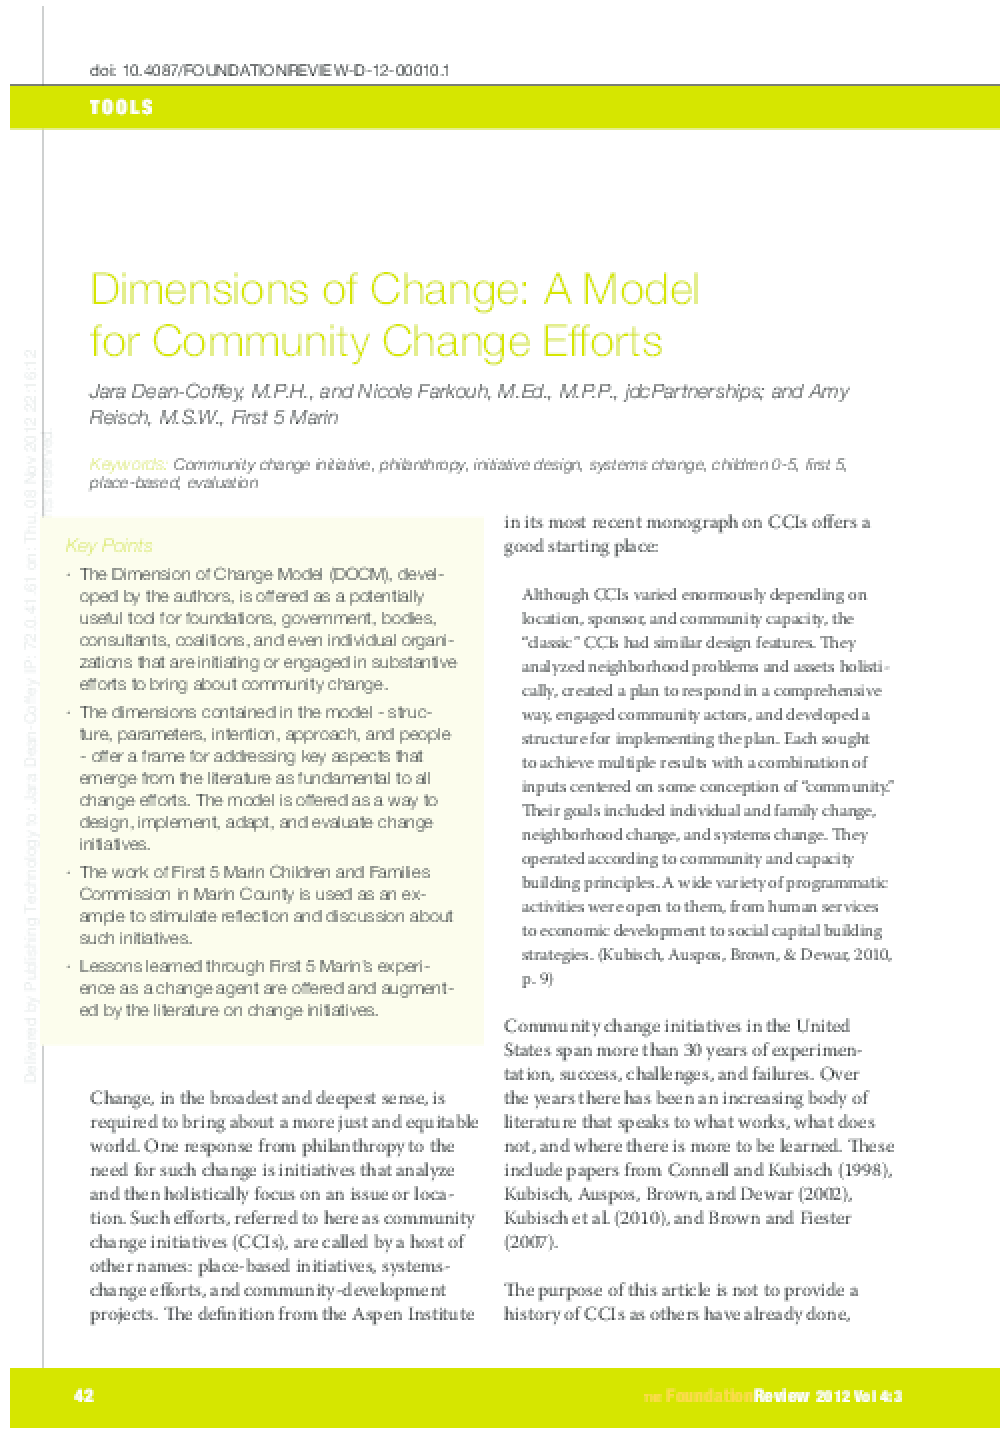 Dimensions of Change - A Model for Community Change Efforts